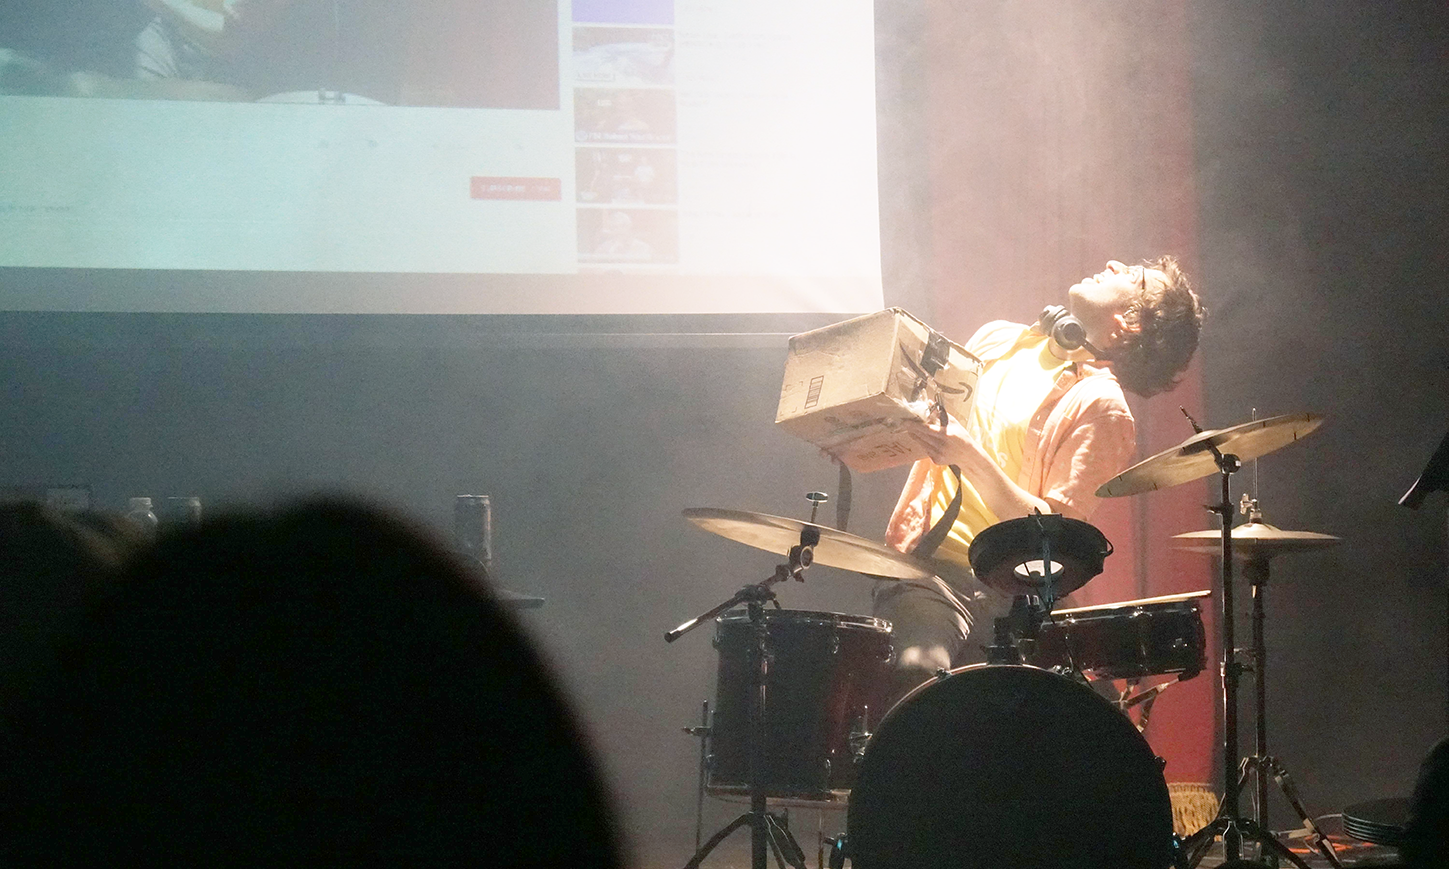 a person seated onstage at a drumset looking up at a projection